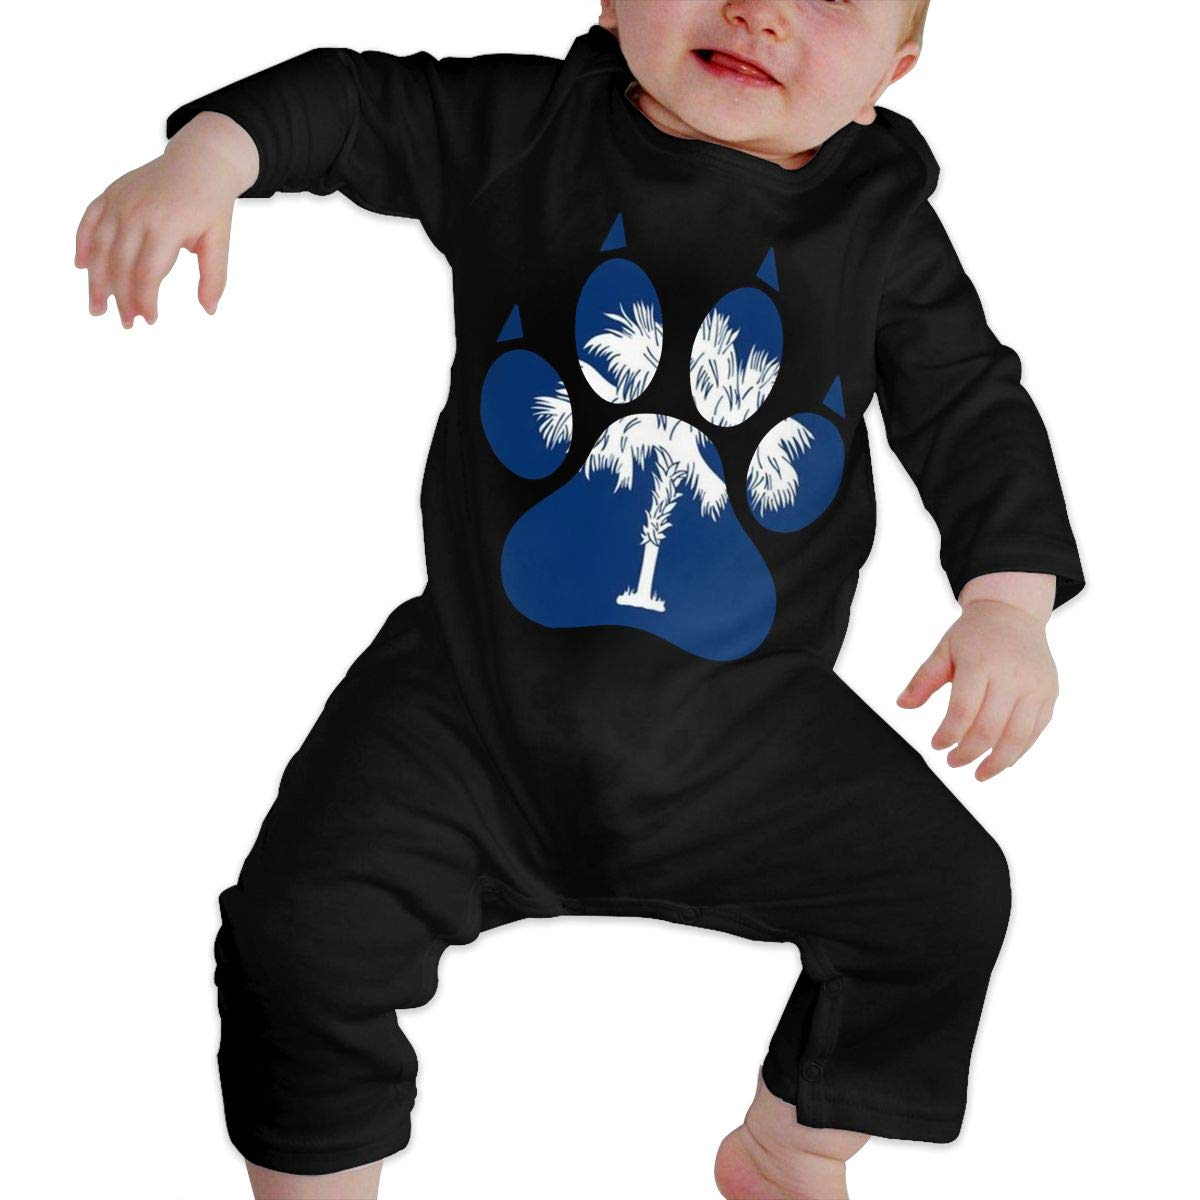 Fashion South Carolina Dog Paw Jumpsuit Long Sleeve Cotton Rompers for Baby Boys and Girls